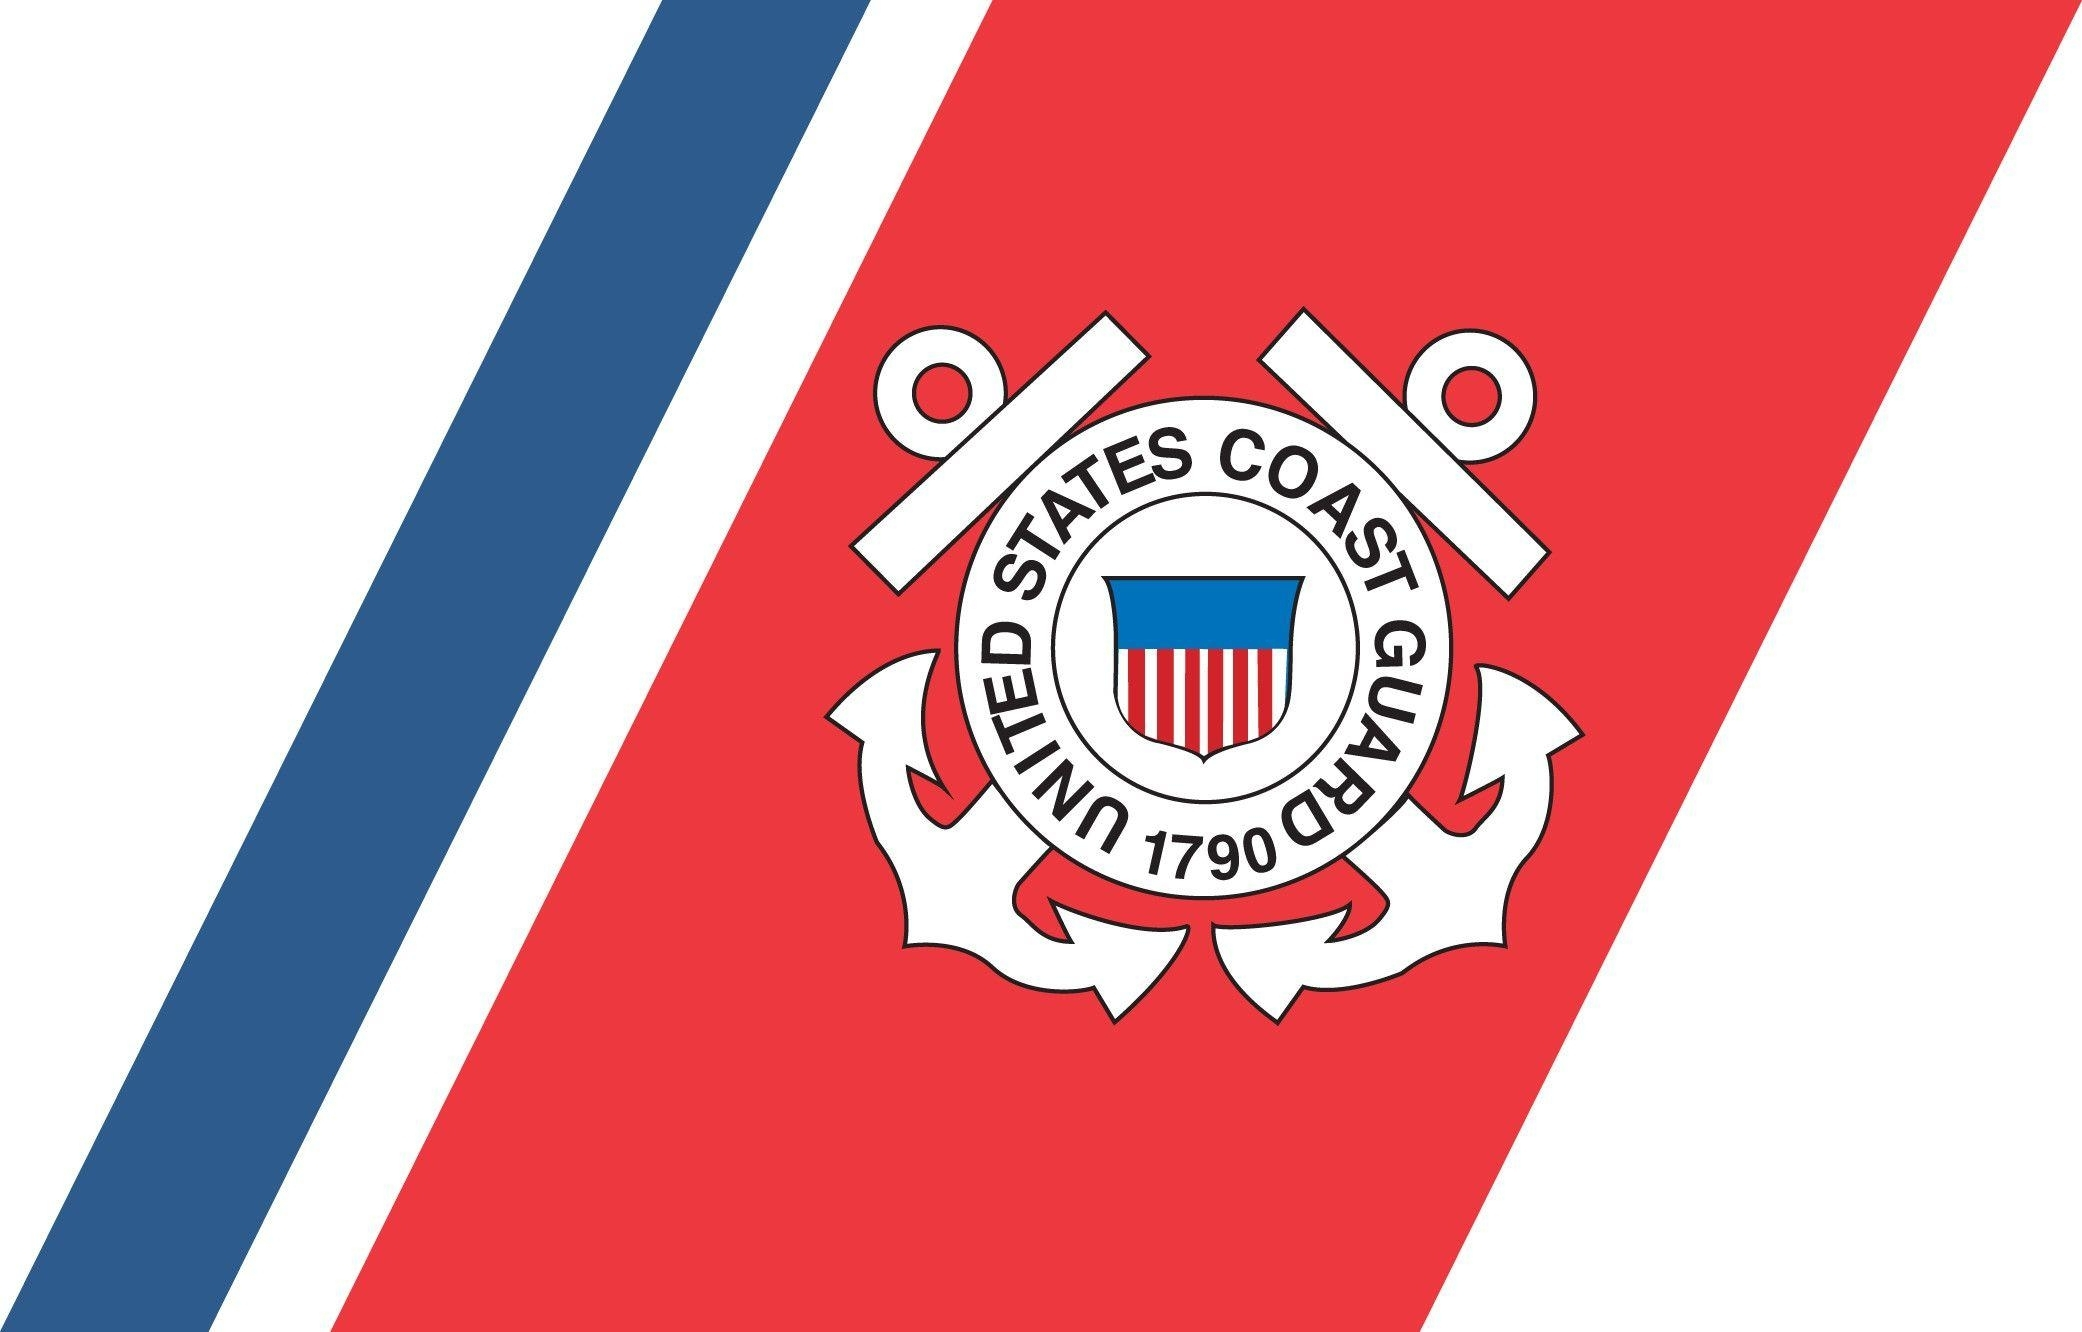 coast guard wallpapers - wallpaper cave